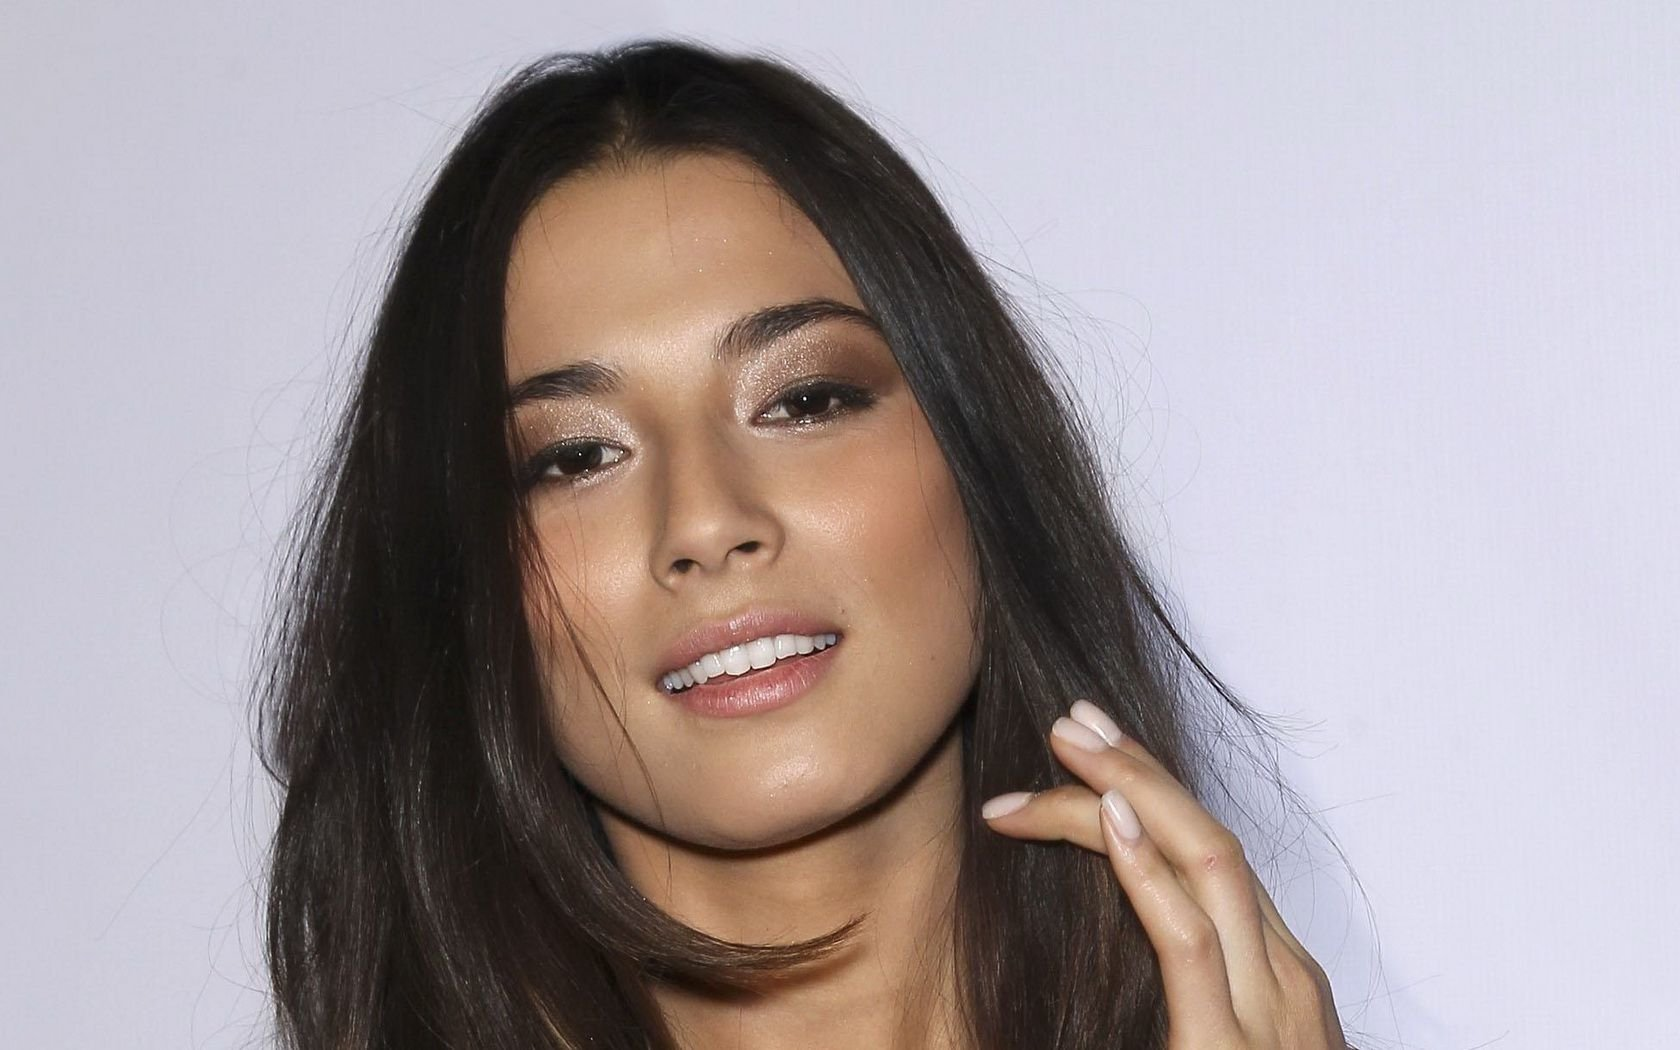 1680x1050 - Jessica Gomes Wallpapers 1